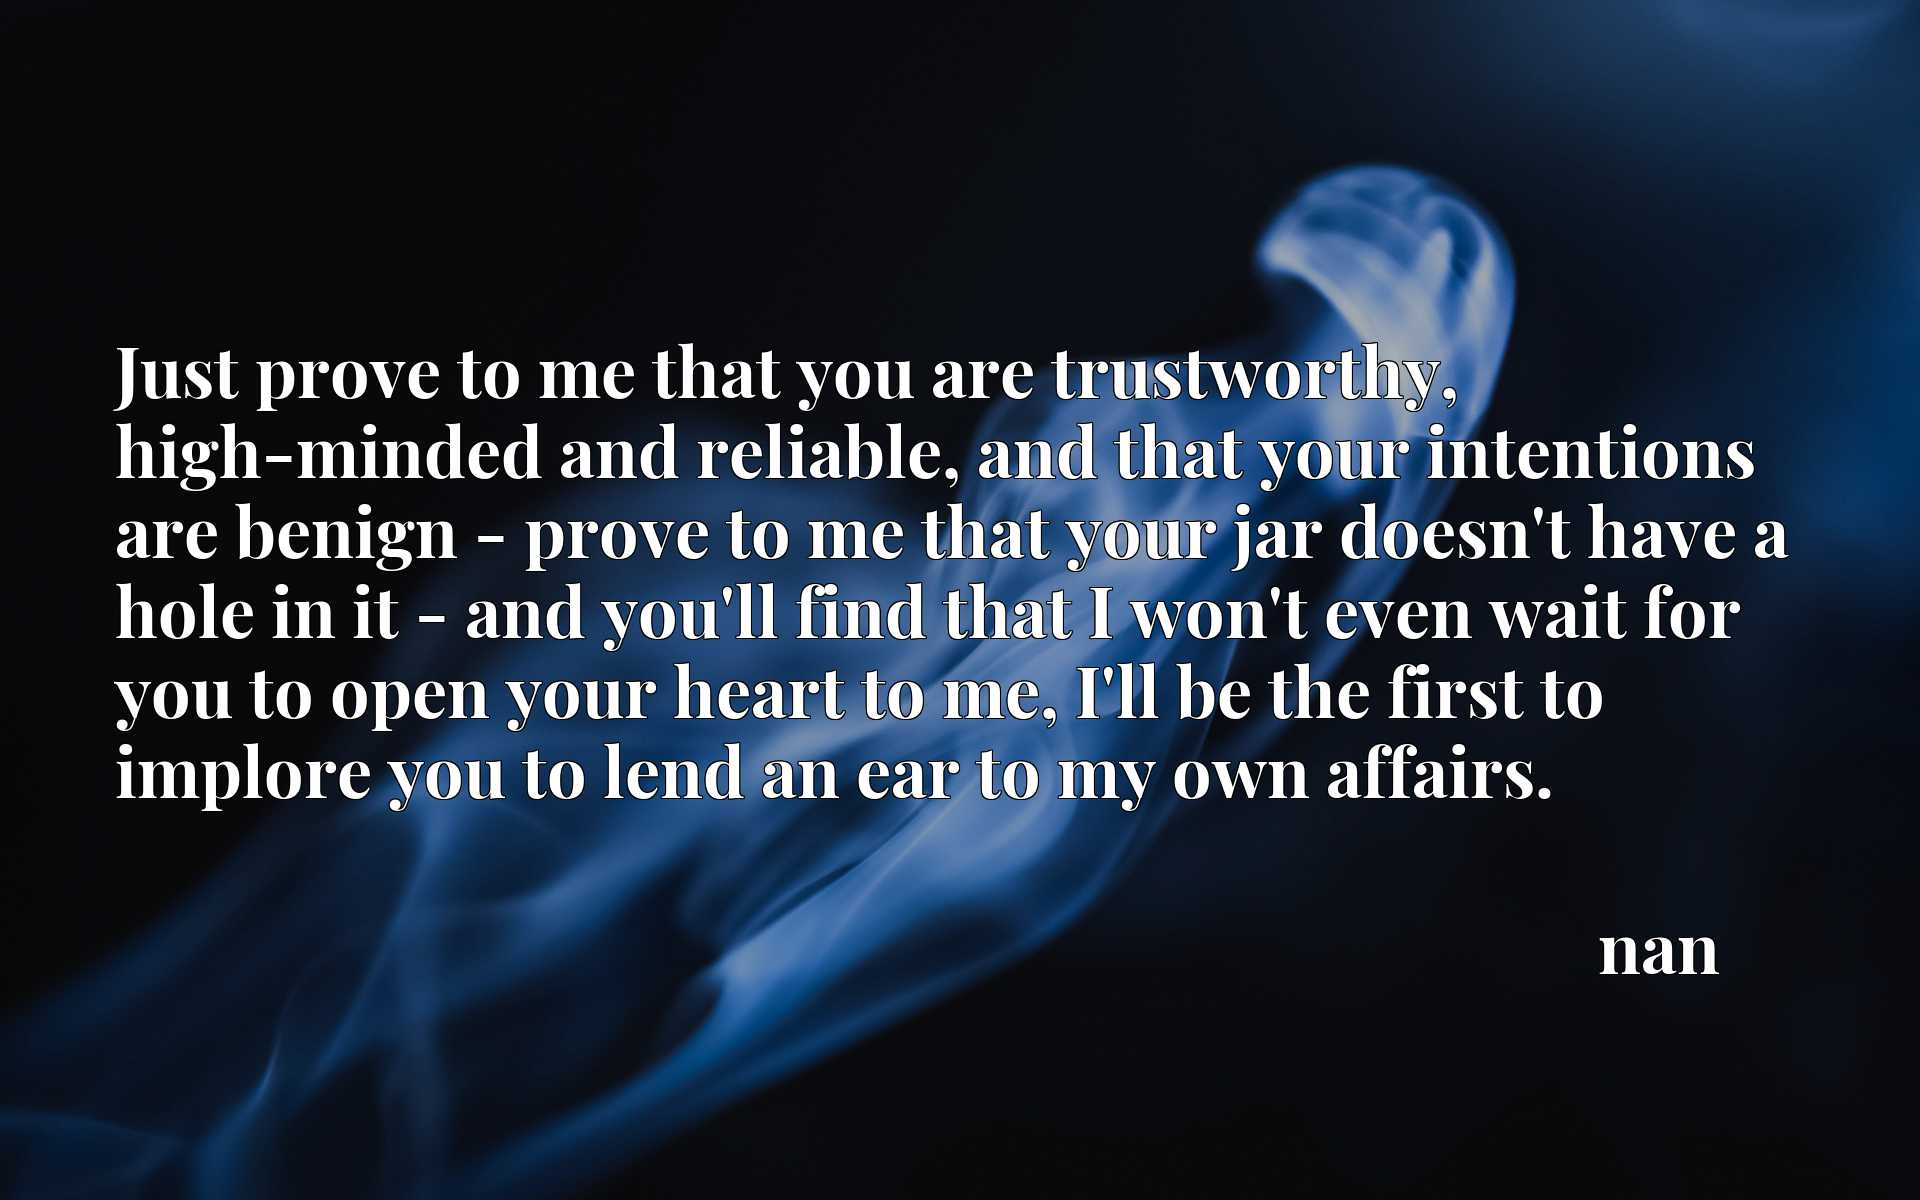 Just prove to me that you are trustworthy, high-minded and reliable, and that your intentions are benign - prove to me that your jar doesn't have a hole in it - and you'll find that I won't even wait for you to open your heart to me, I'll be the first to implore you to lend an ear to my own affairs.